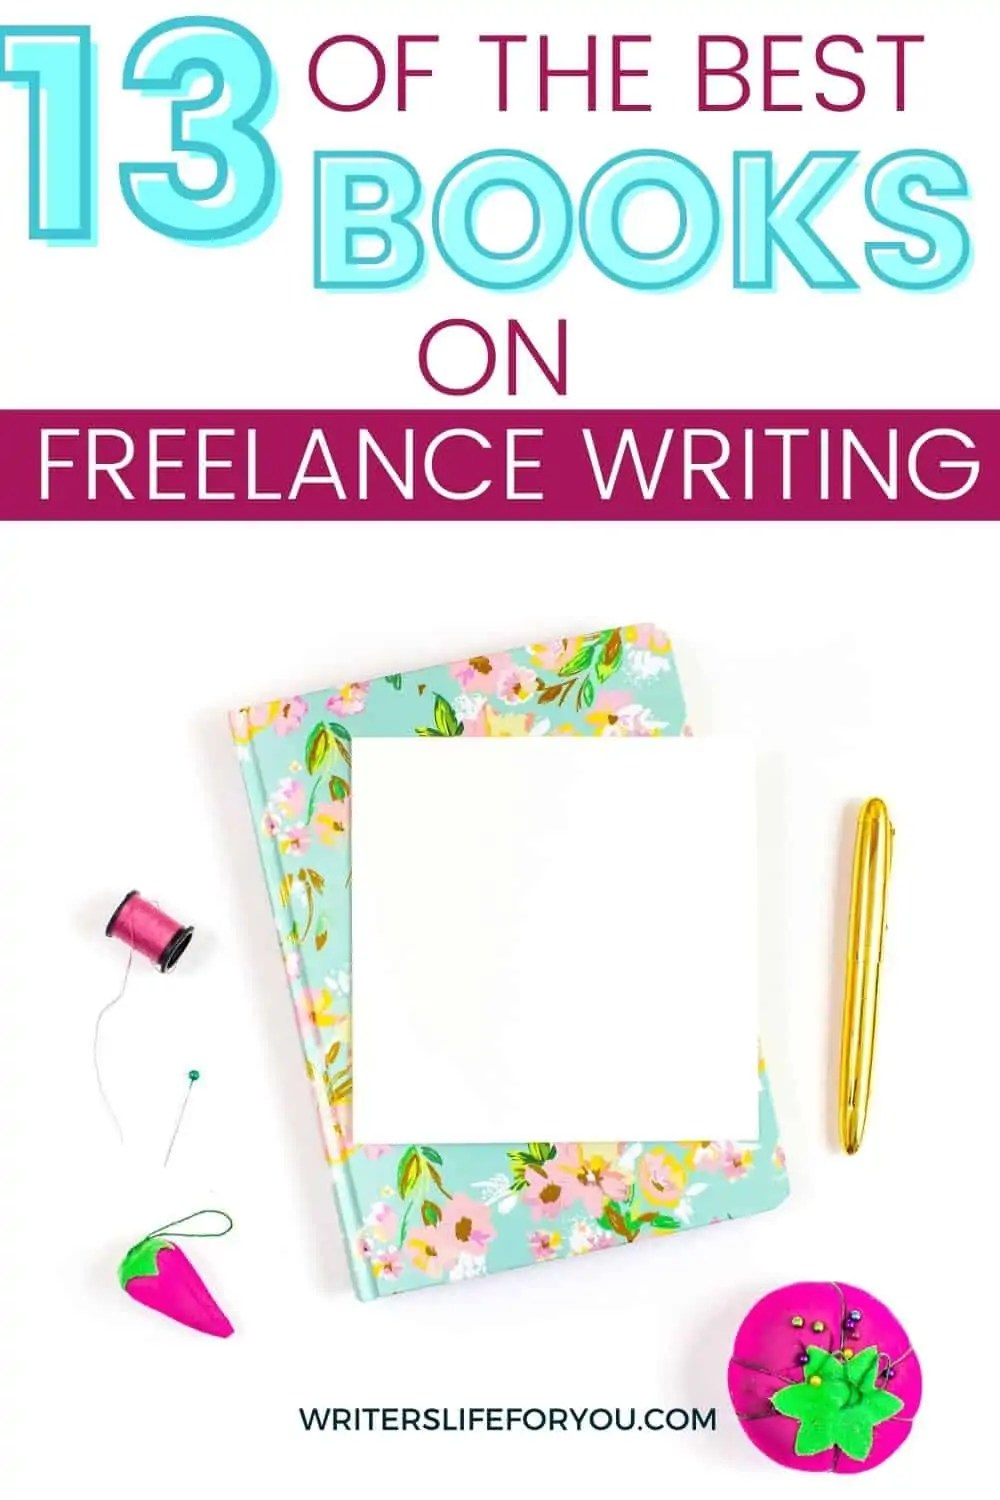 13 of the Best Books on Freelance Writing and Business That Will Make You a Success